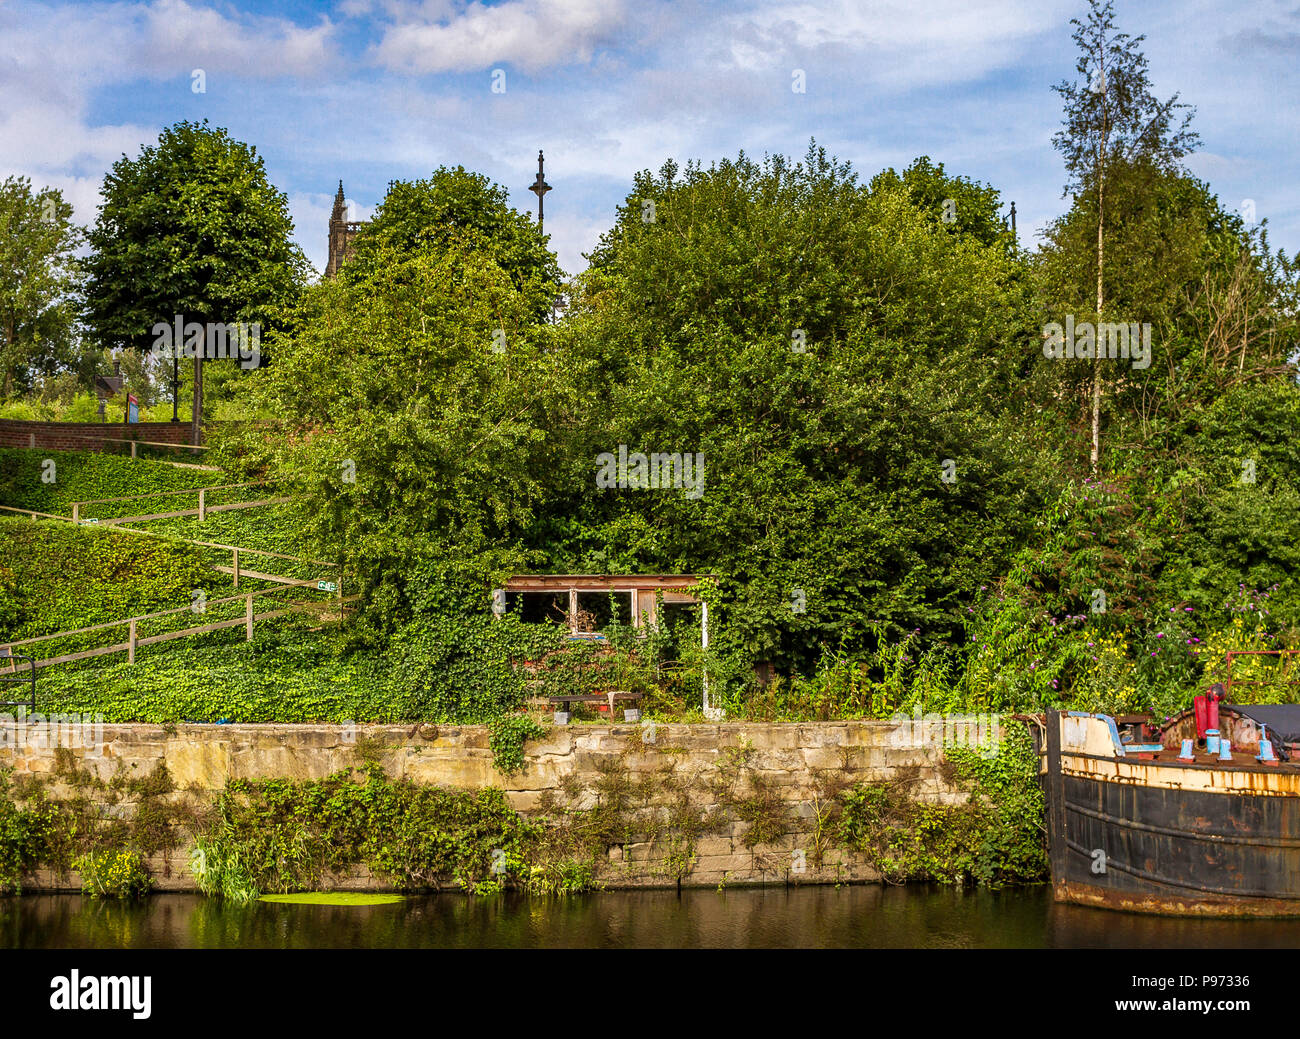 Stroll along the canal in Leeds one sunny afternoon. A ruin shed taken over by Nature and a rusty boat moored to the bank. - Stock Image